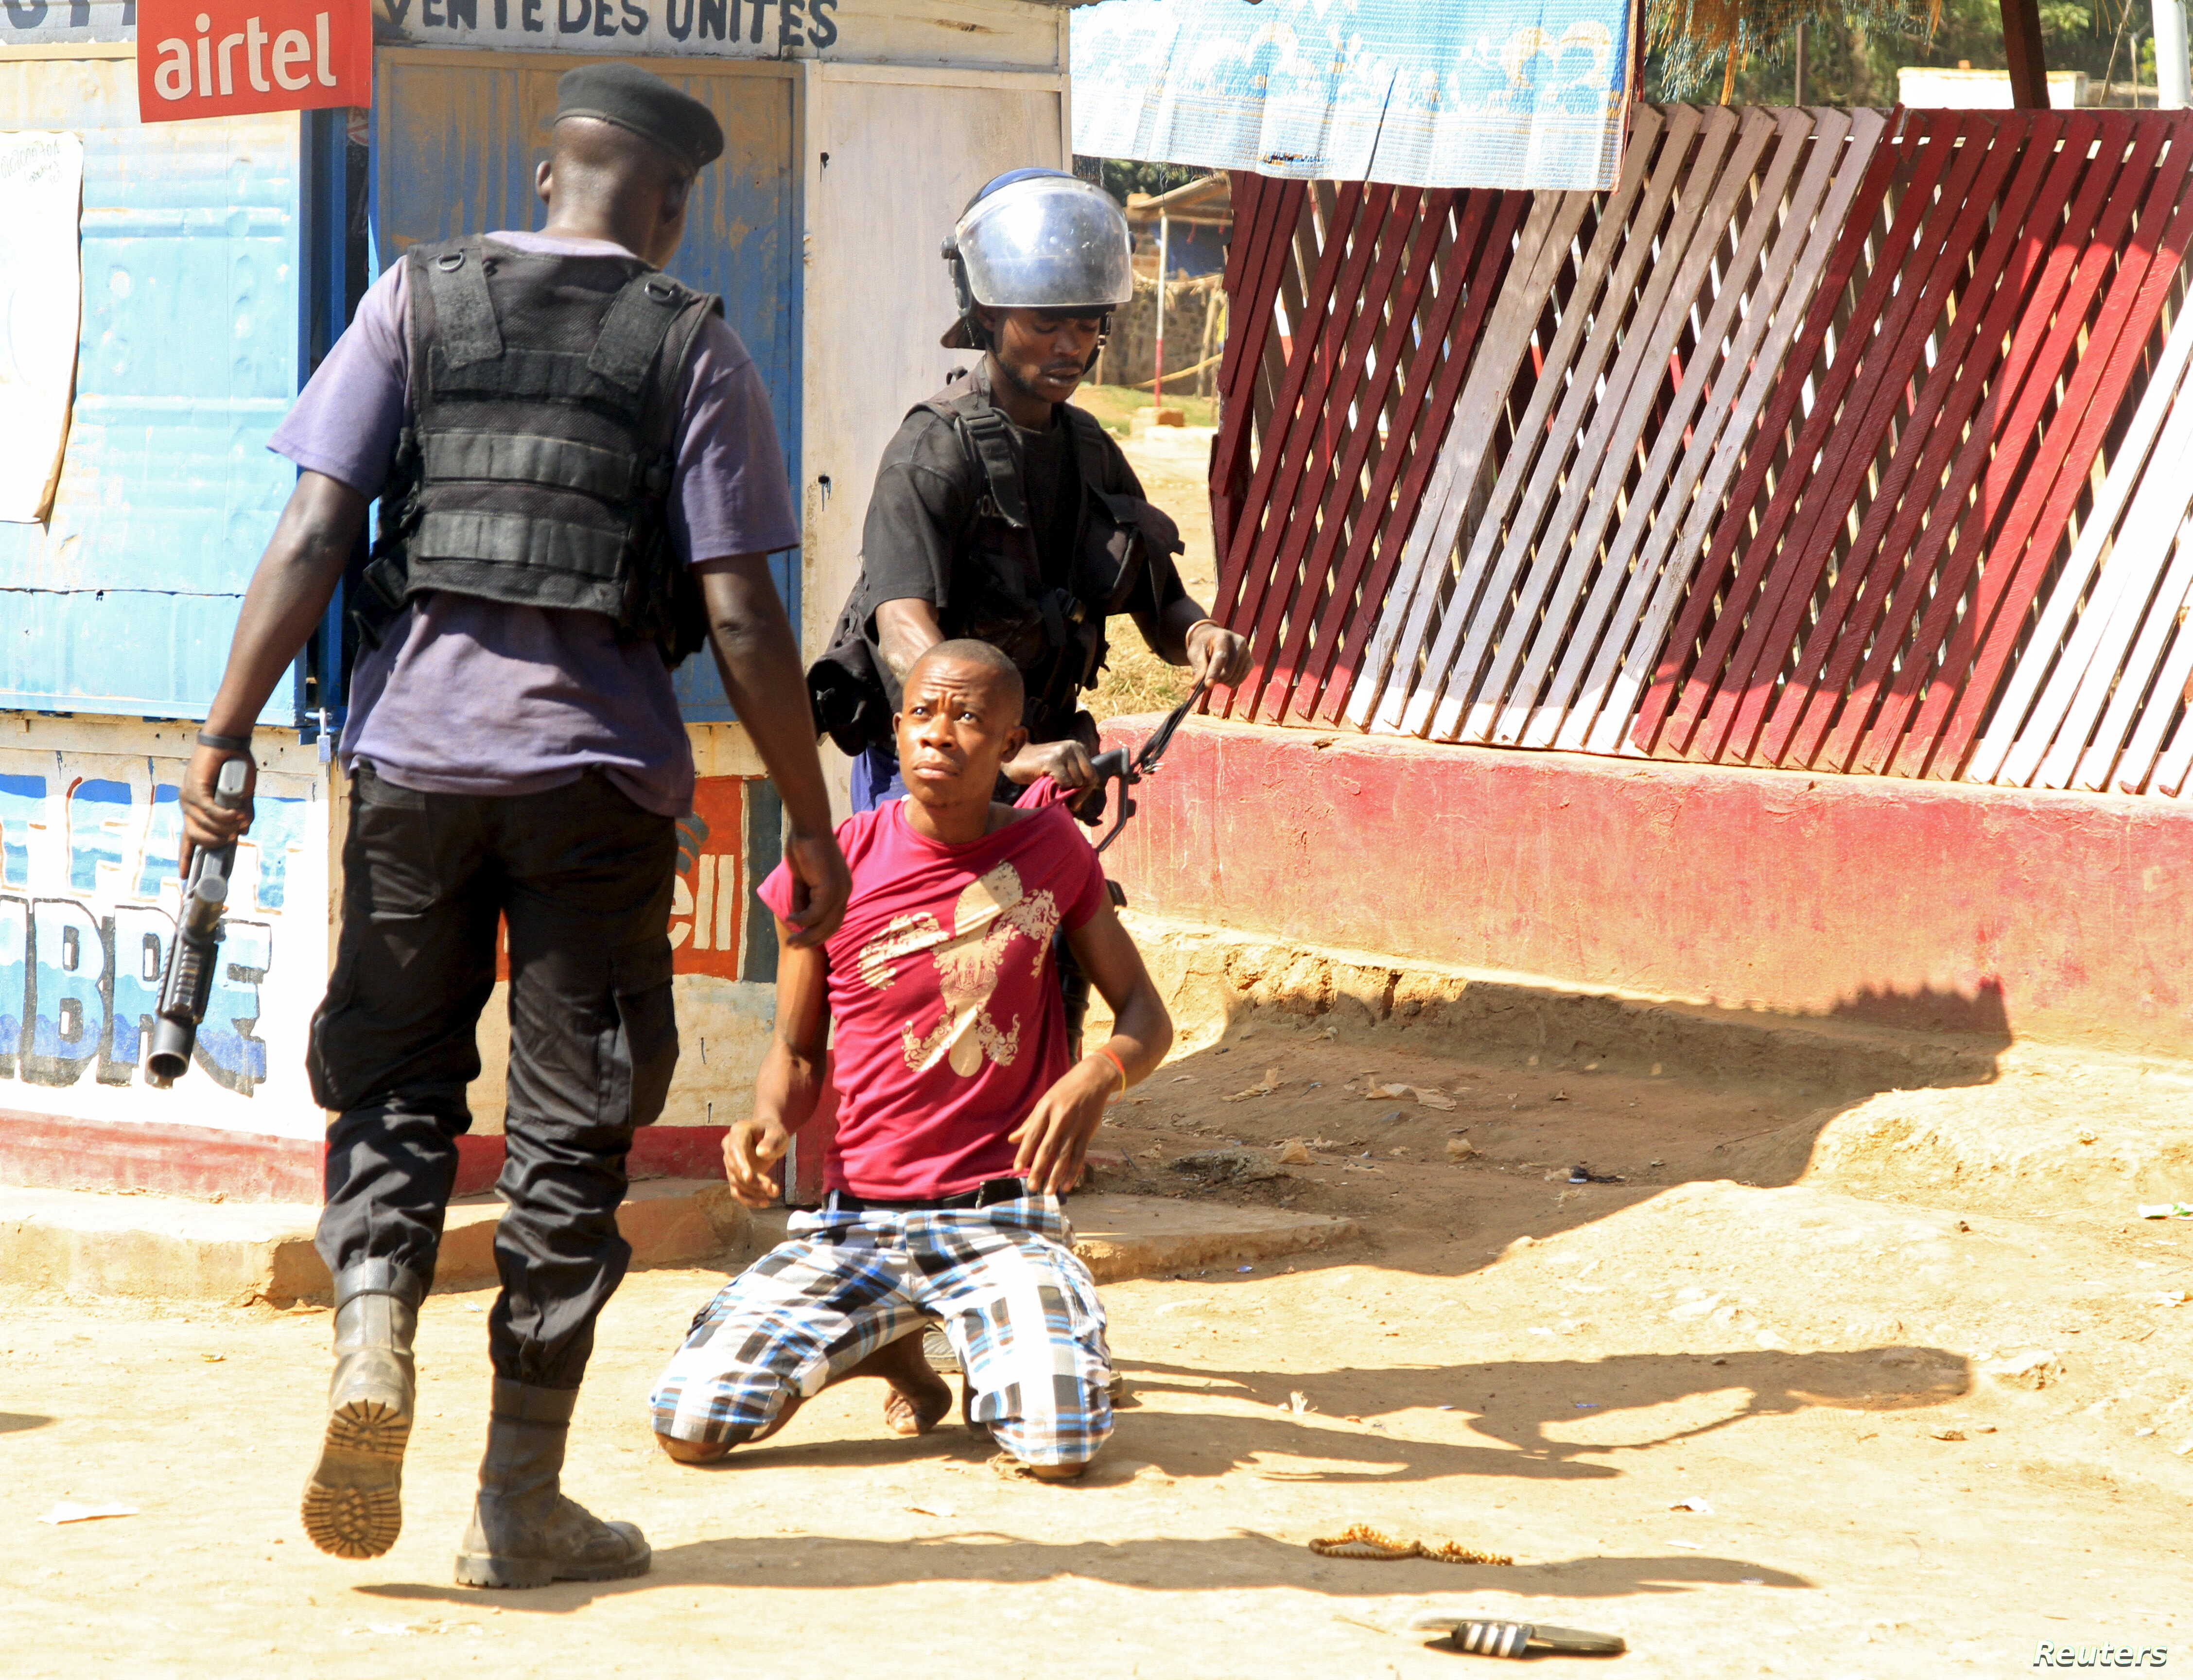 Policemen detain a protester during clashes in Lubumbashi, Democratic Republic of Congo, Nov. 10, 2015.